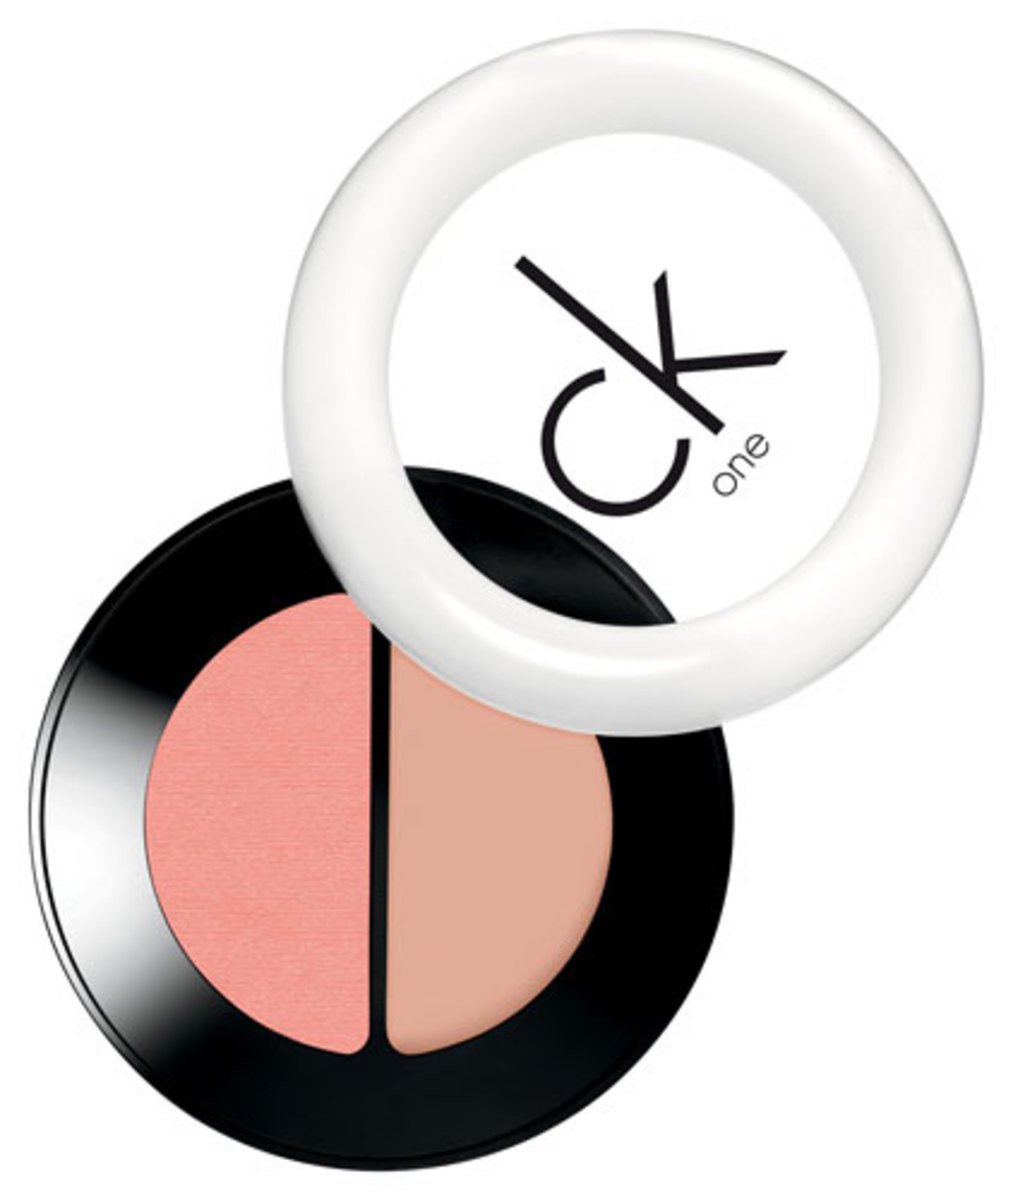 CK One Cream & Powder Blush Duo in Breath 100